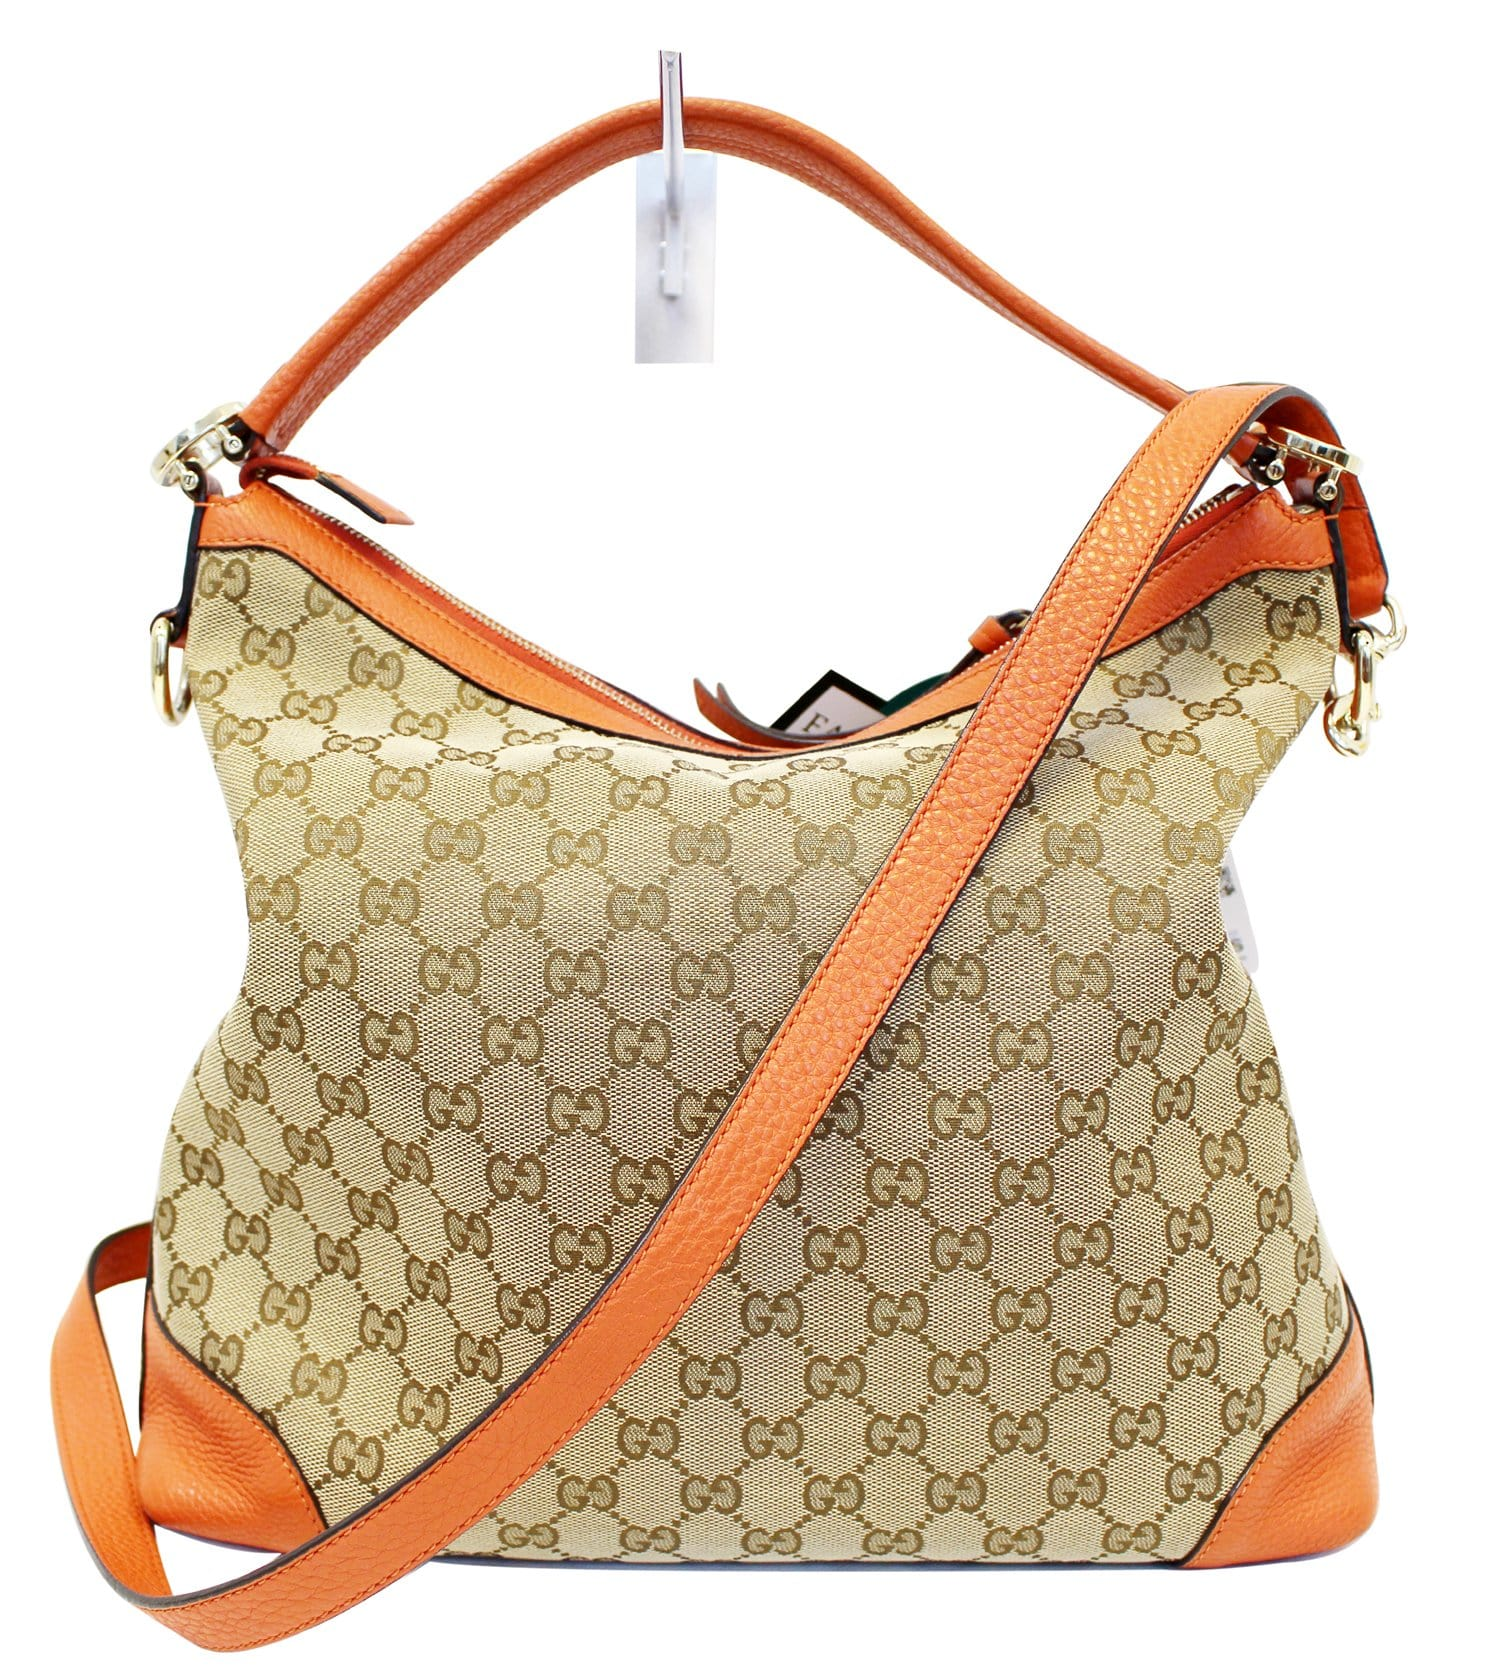 7110028ba7868 GUCCI Beige GG Canvas Miss GG Original Hobo Bag